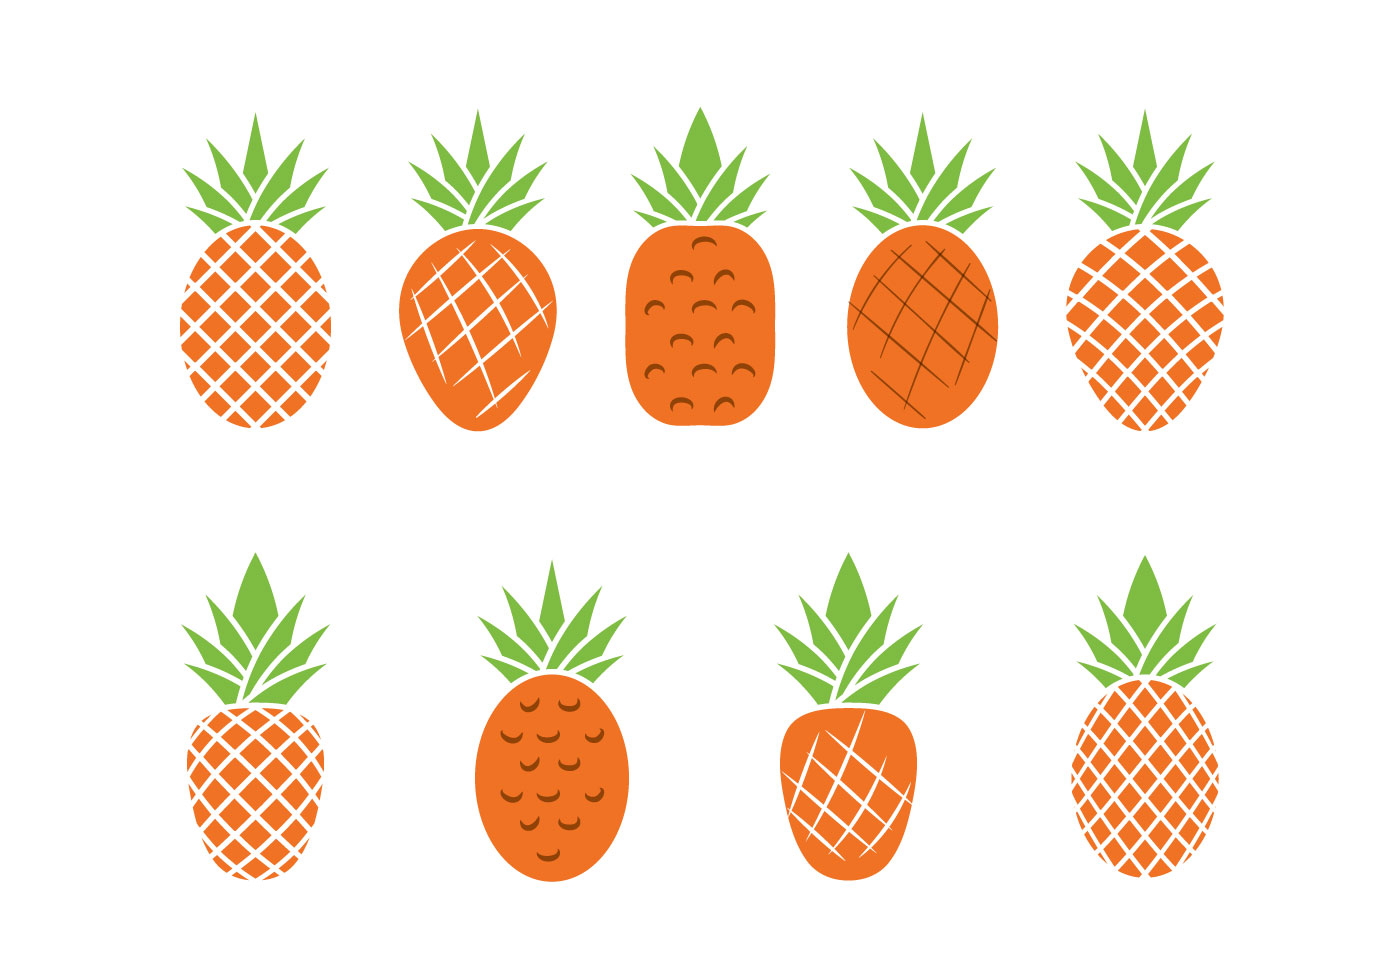 Download Free Vector Art Stock: Free Ananas Vector Illustration